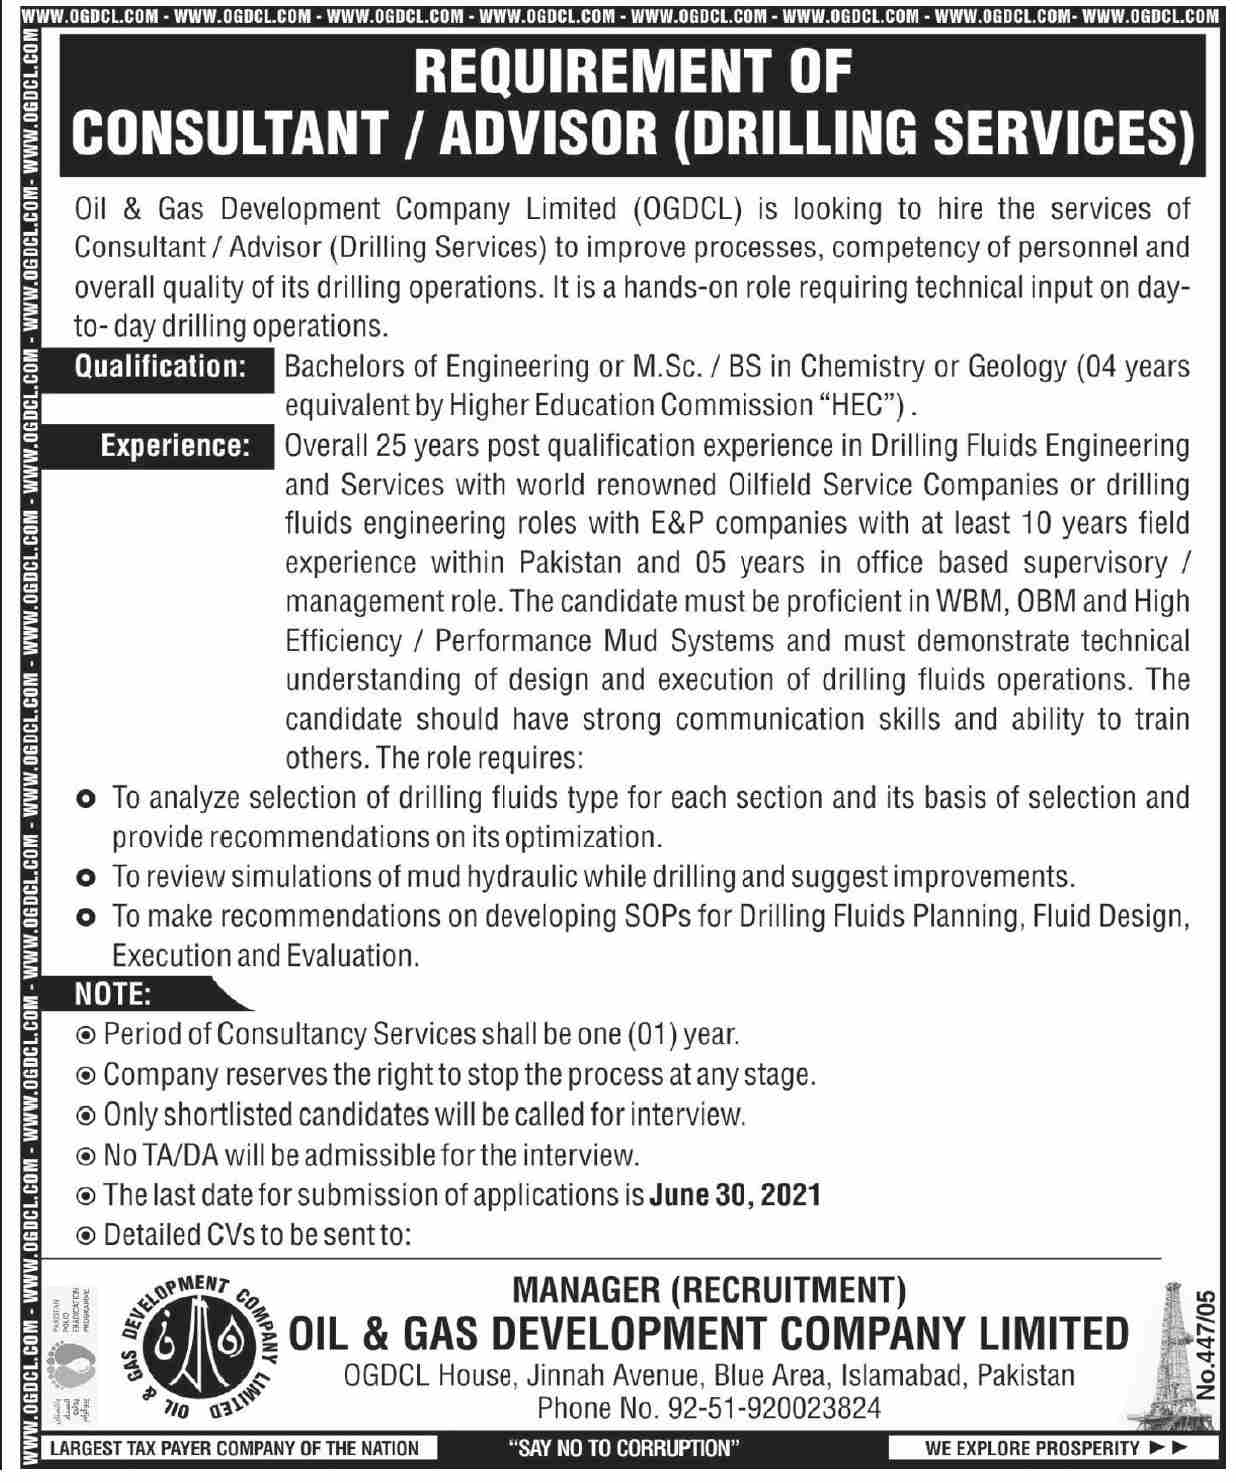 Consultant Drilling Services Jobs in OGDCL